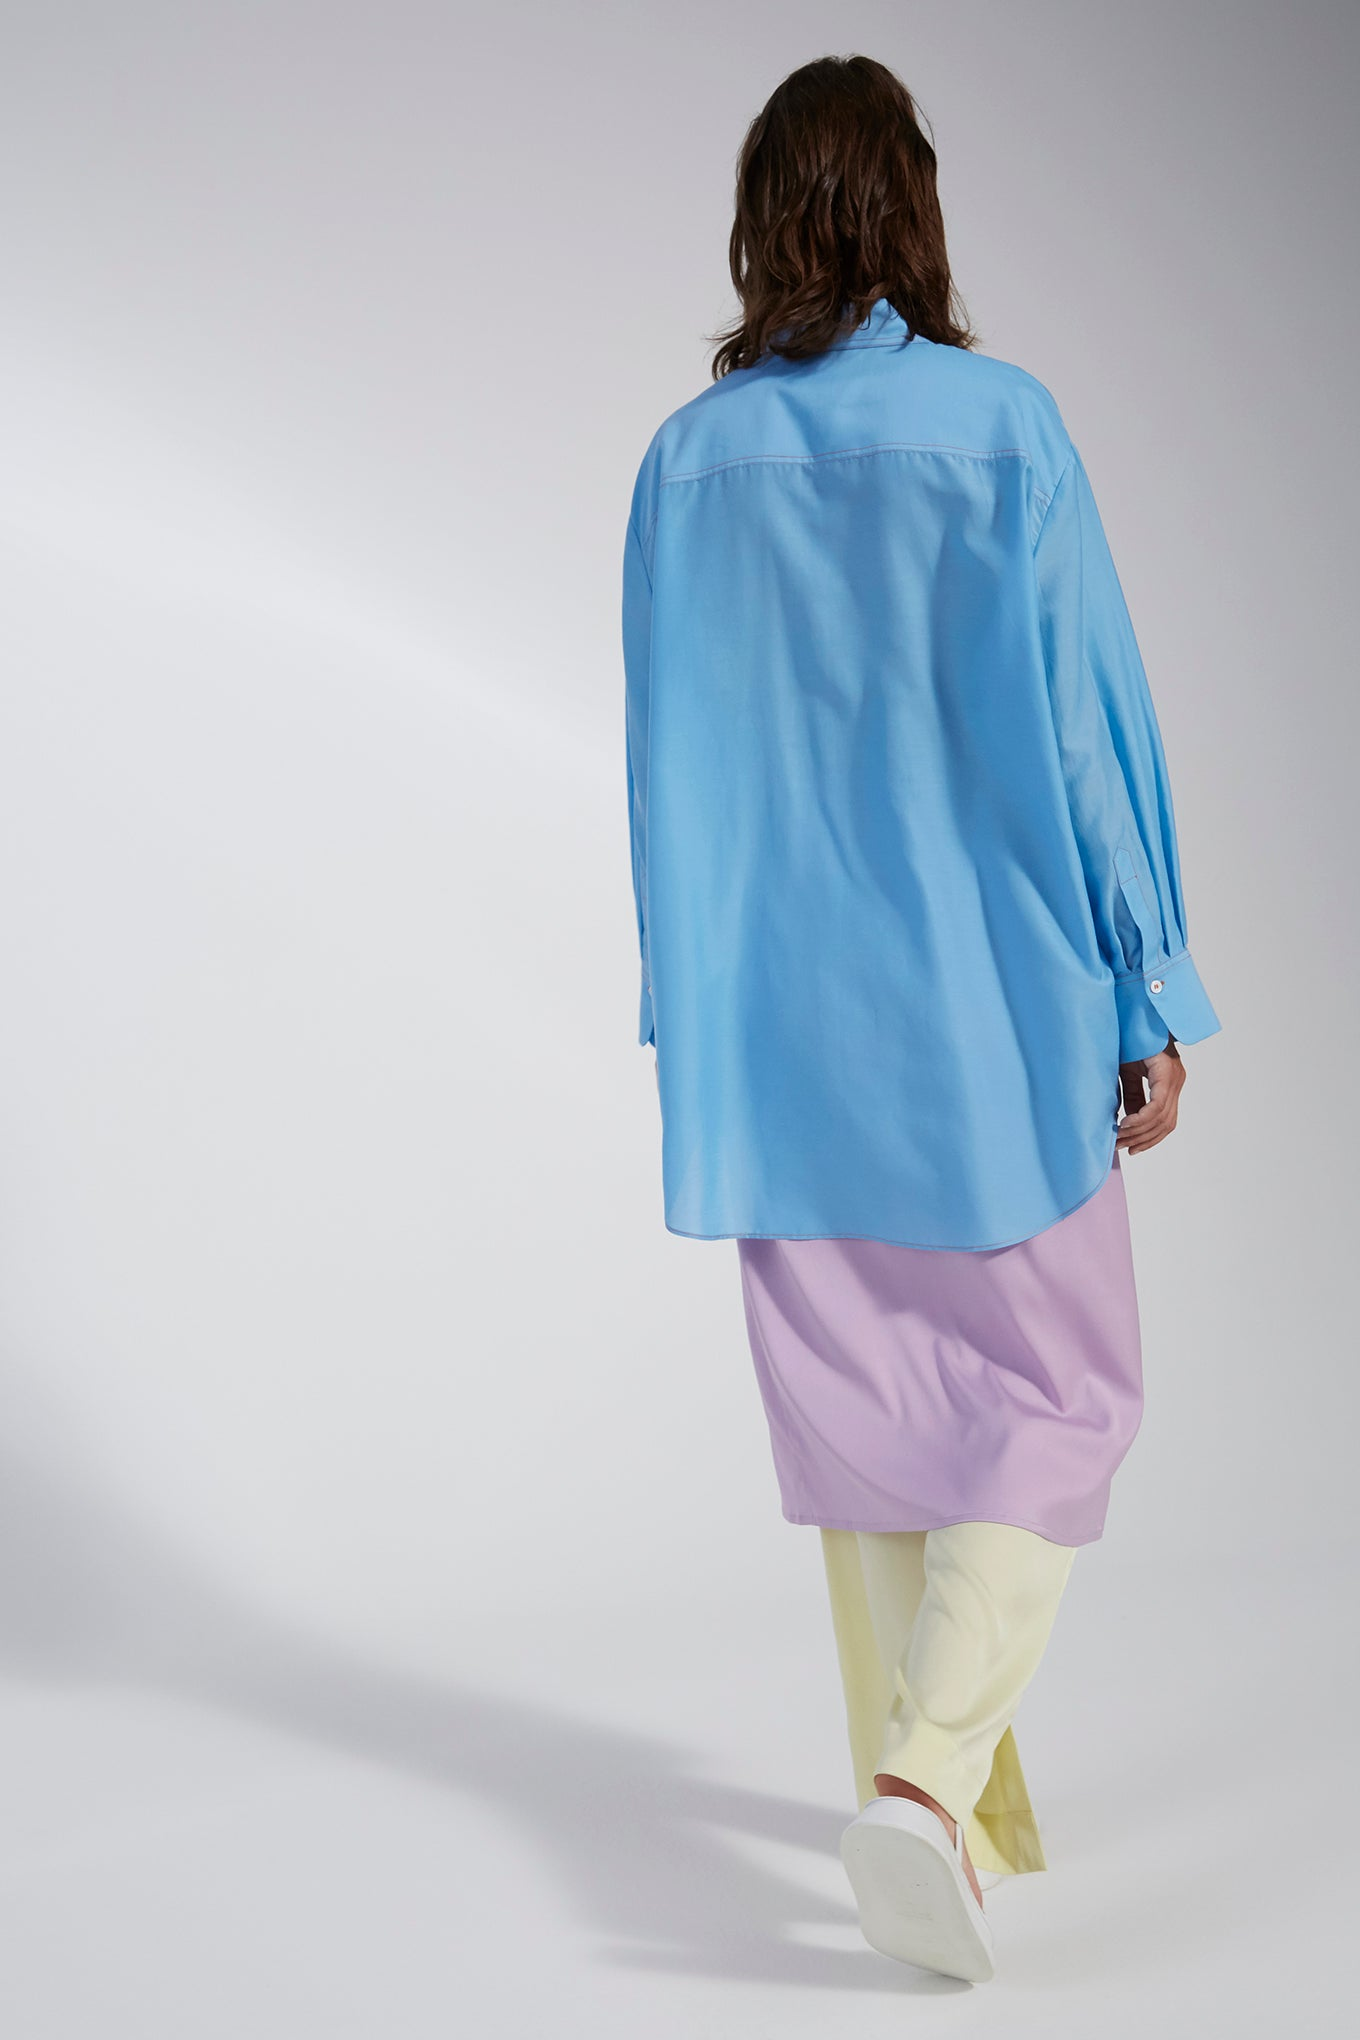 ELFIE SHIRT - LIGHT BLUE - SILK/COTTON